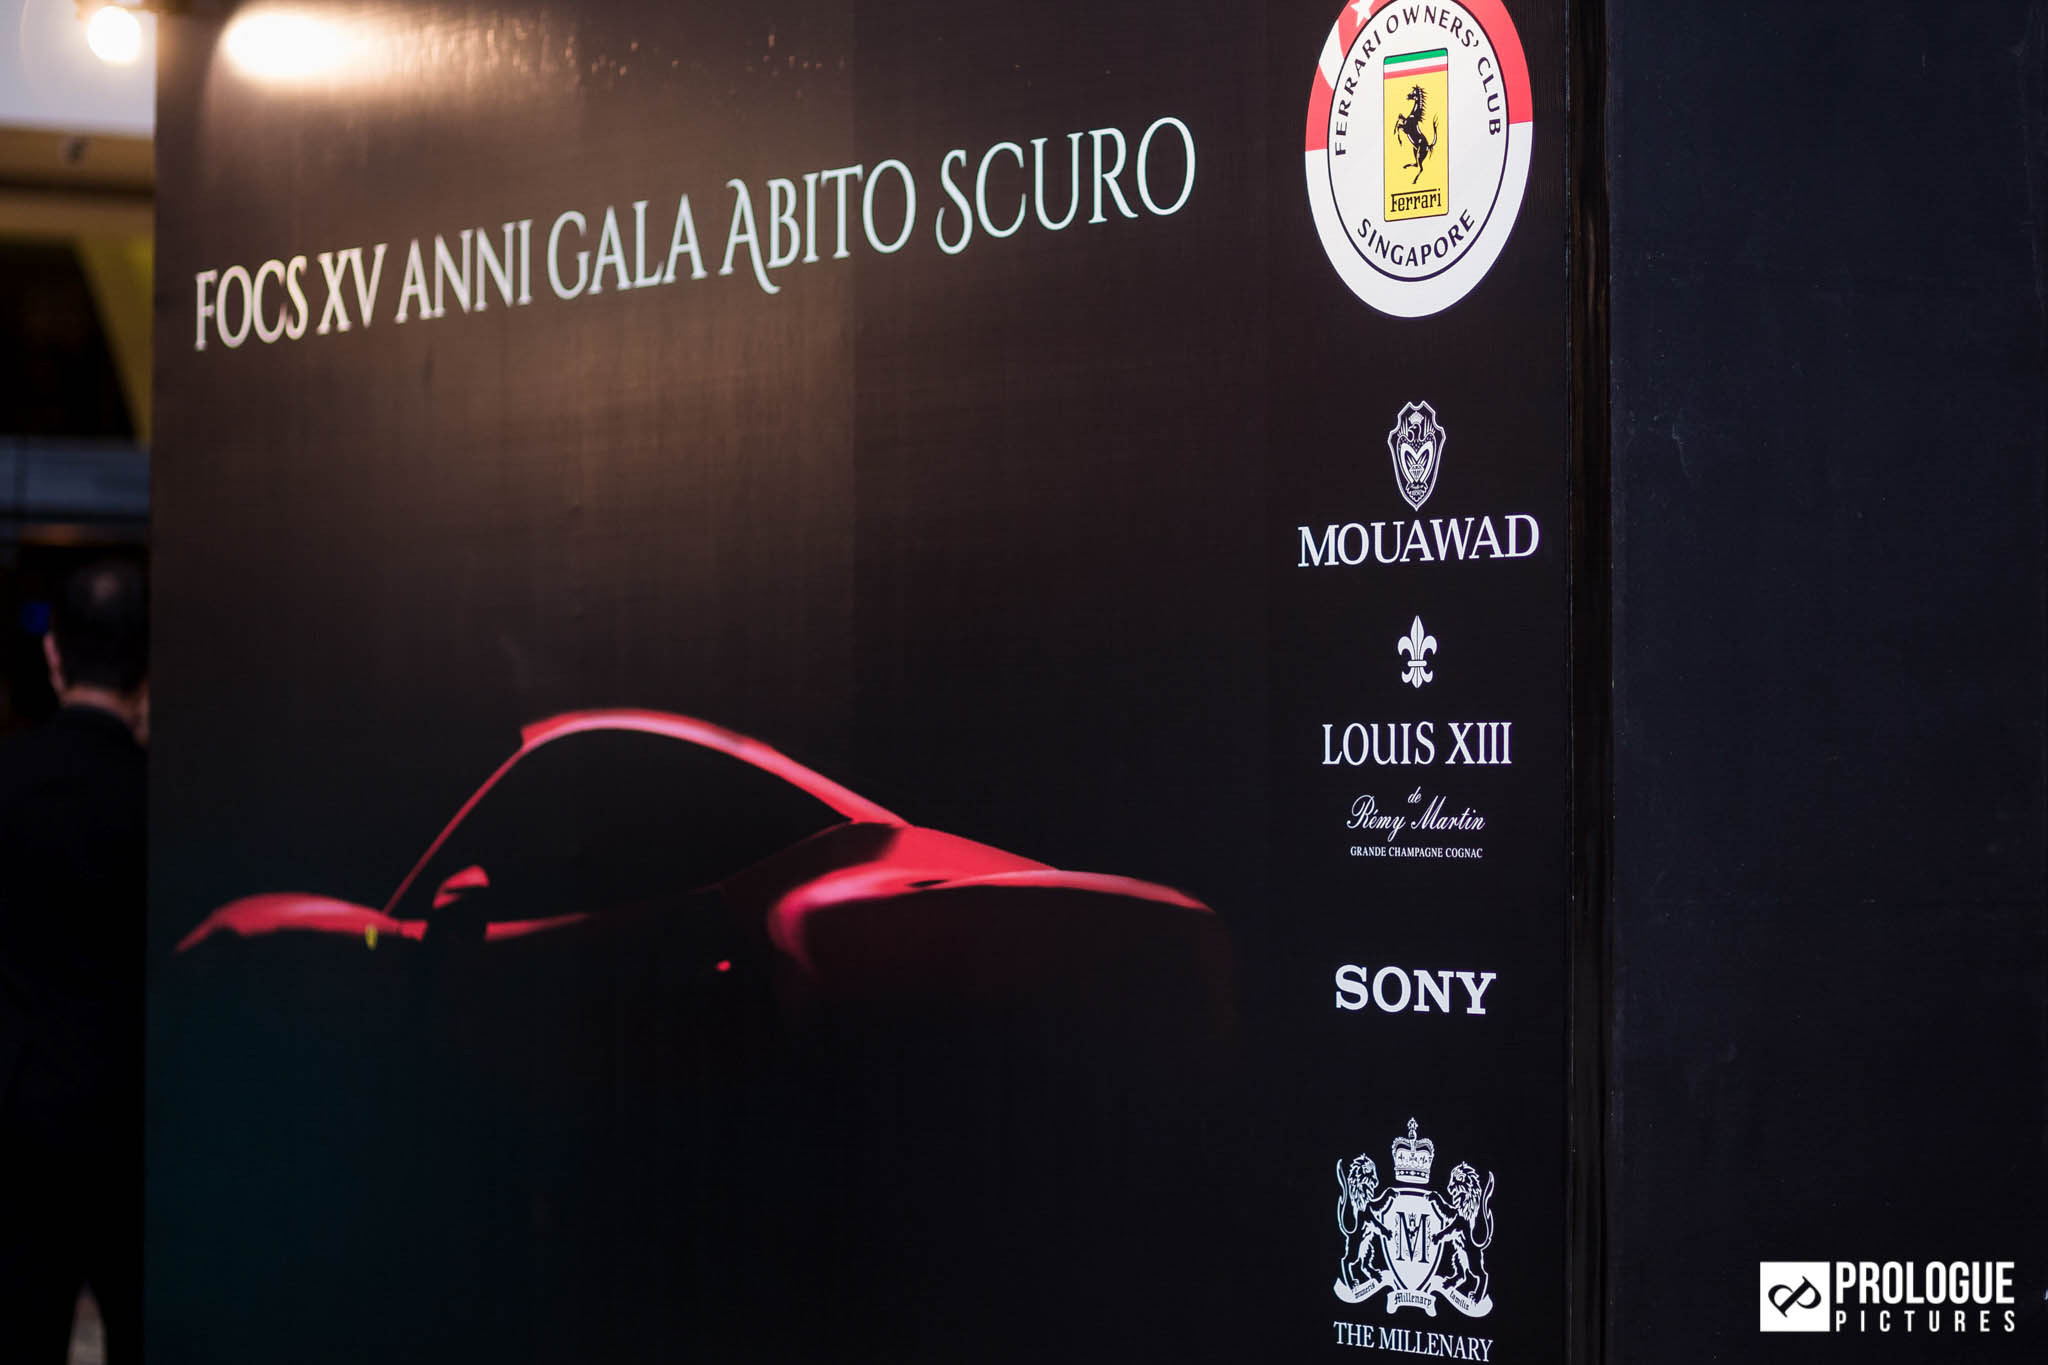 focs-ferrari-owners-club-singapore-event-photography-singapore-prologue-pictures-07